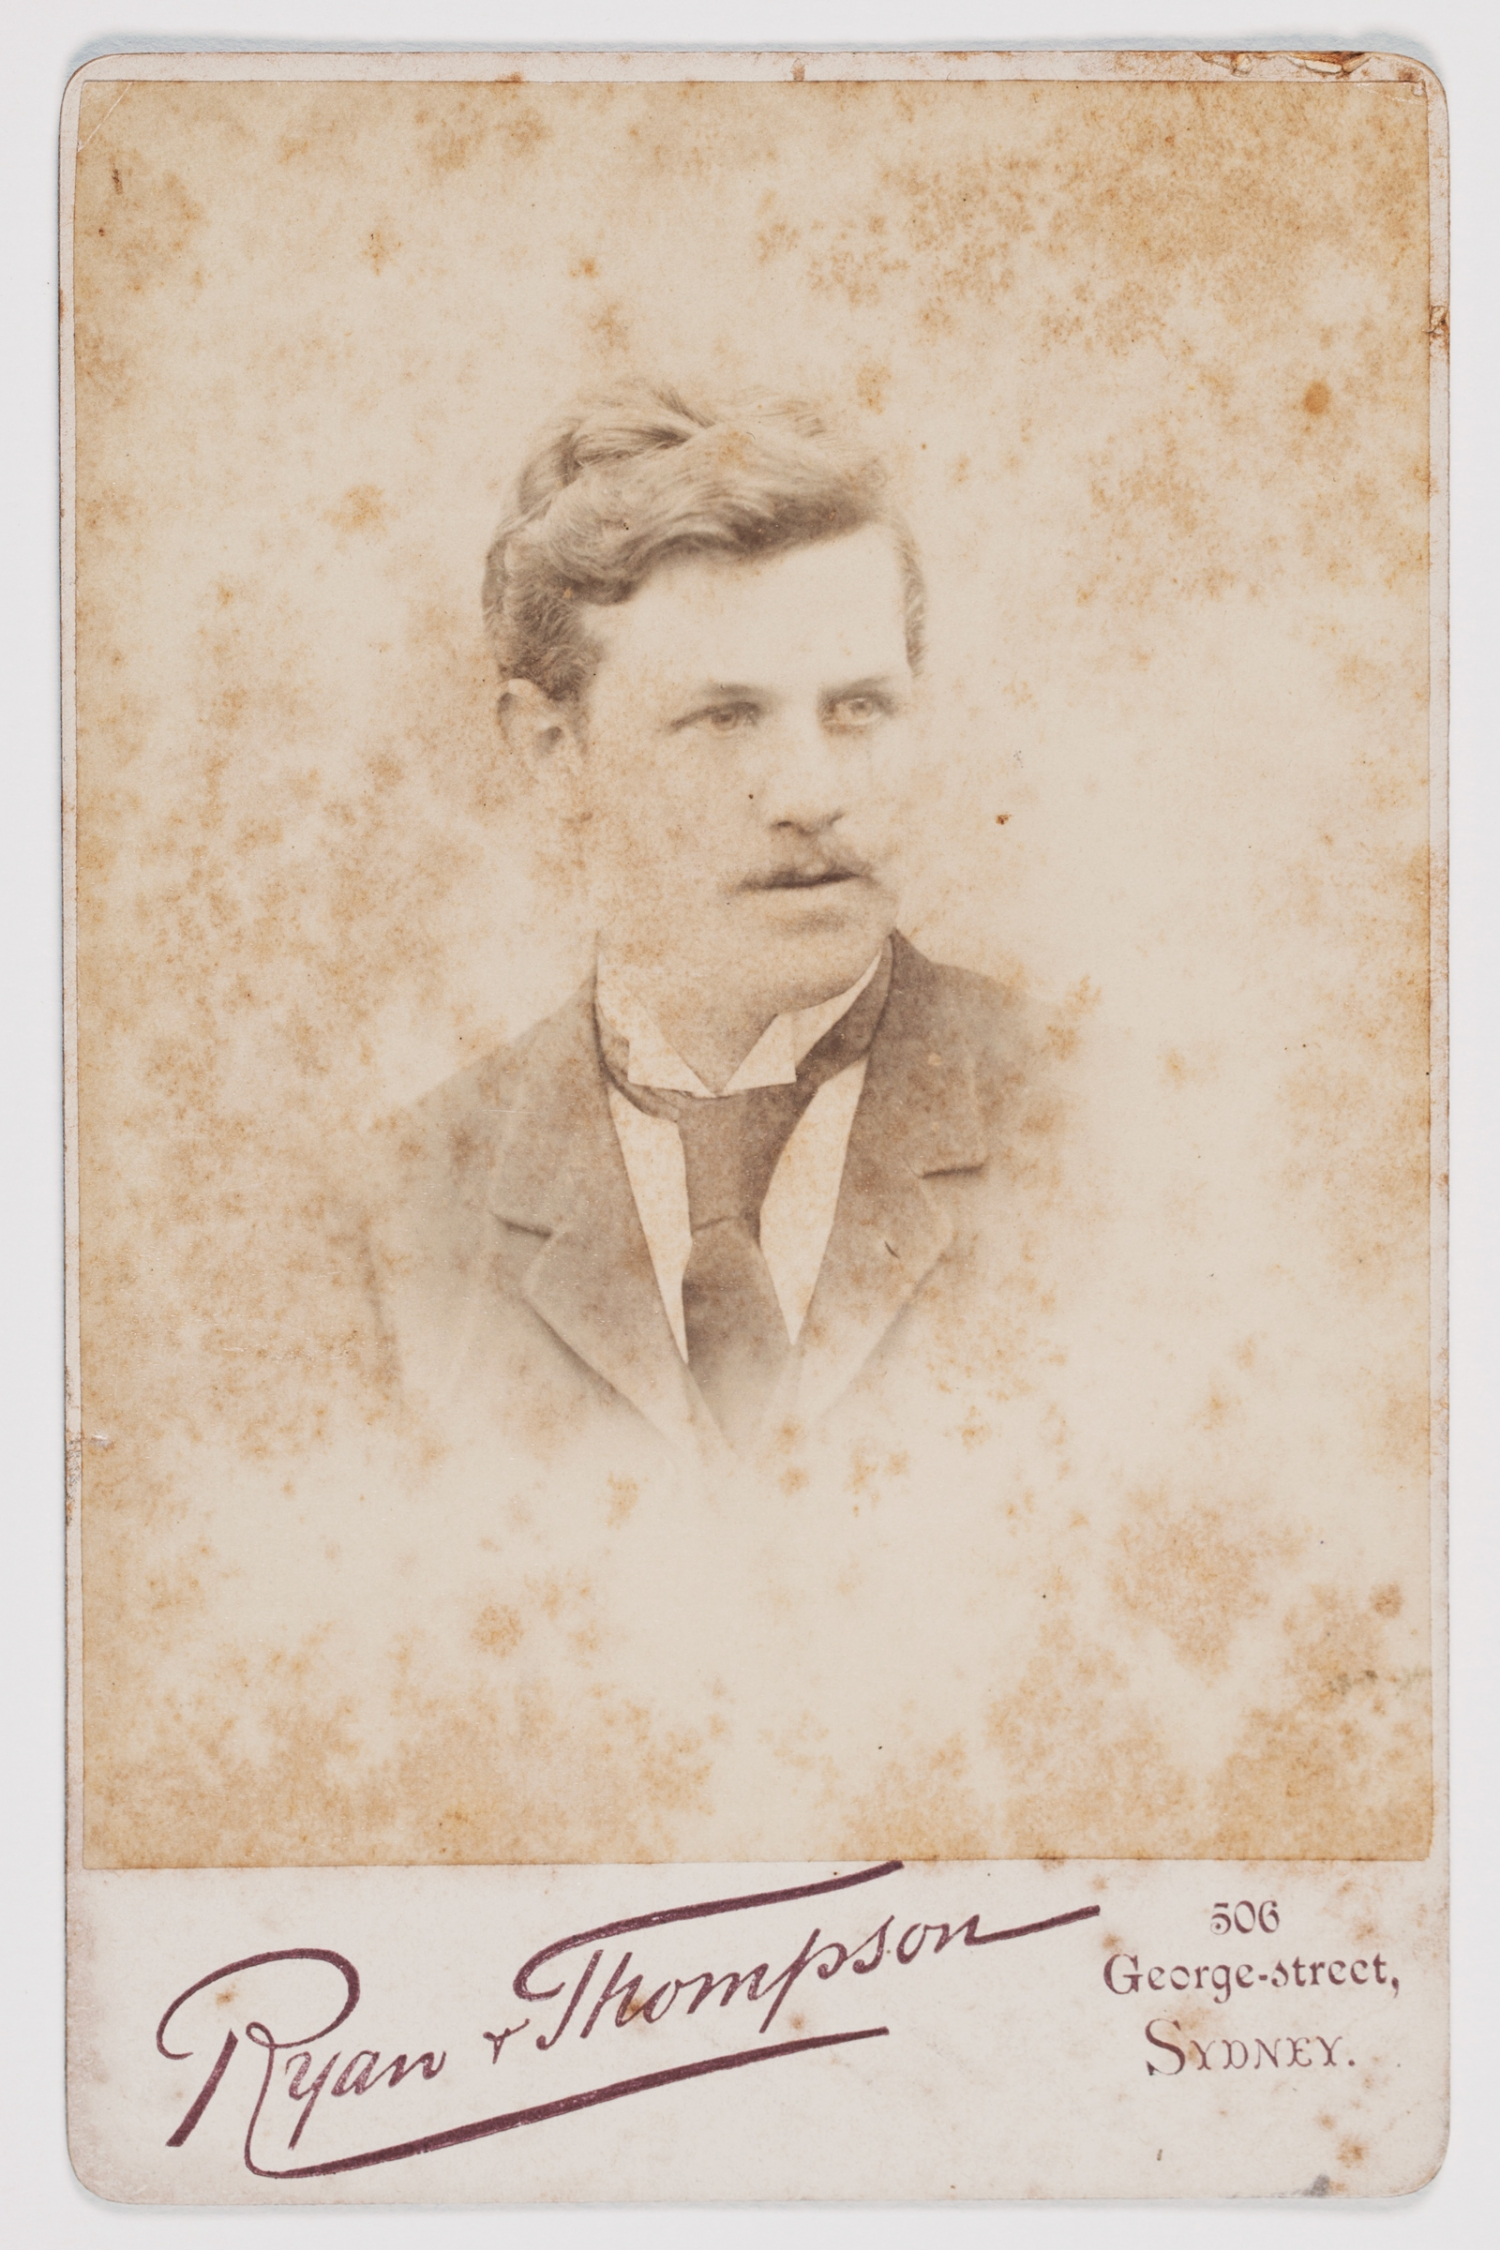 Sepia toned and faded portrait of young man with tie.